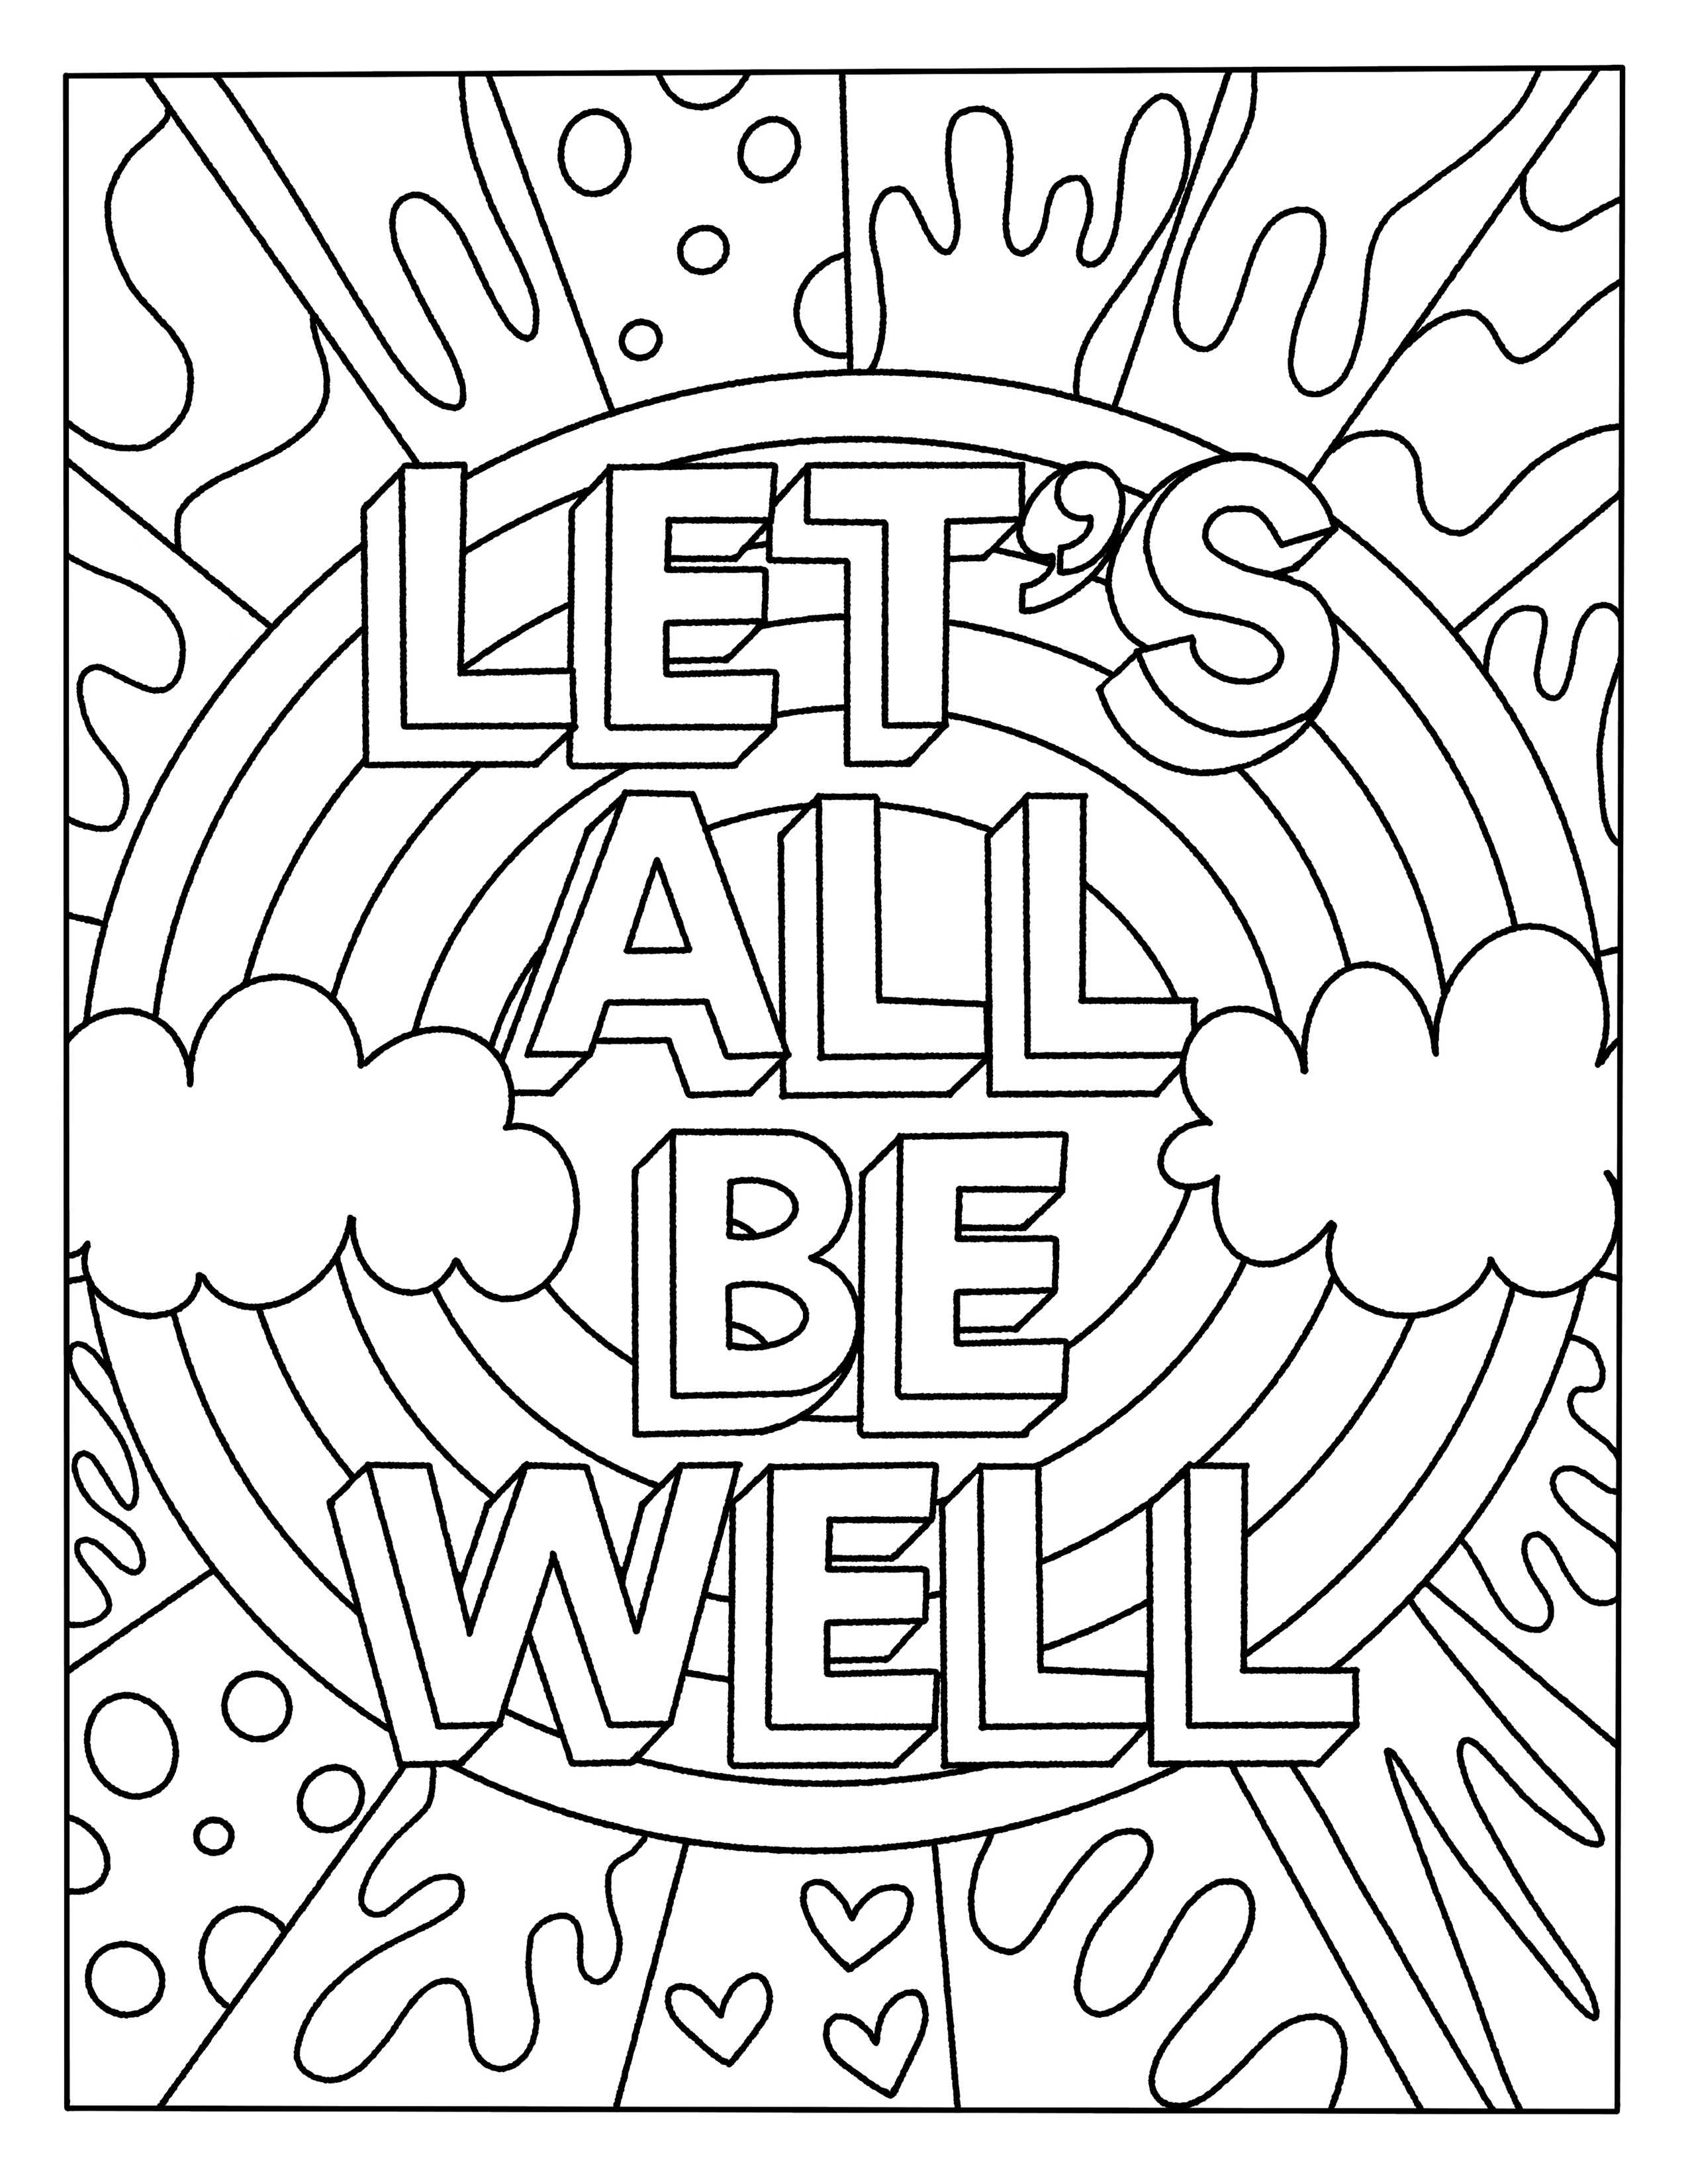 - Rainbow Coloring Book Page - Inspirational Quote Coloring Page